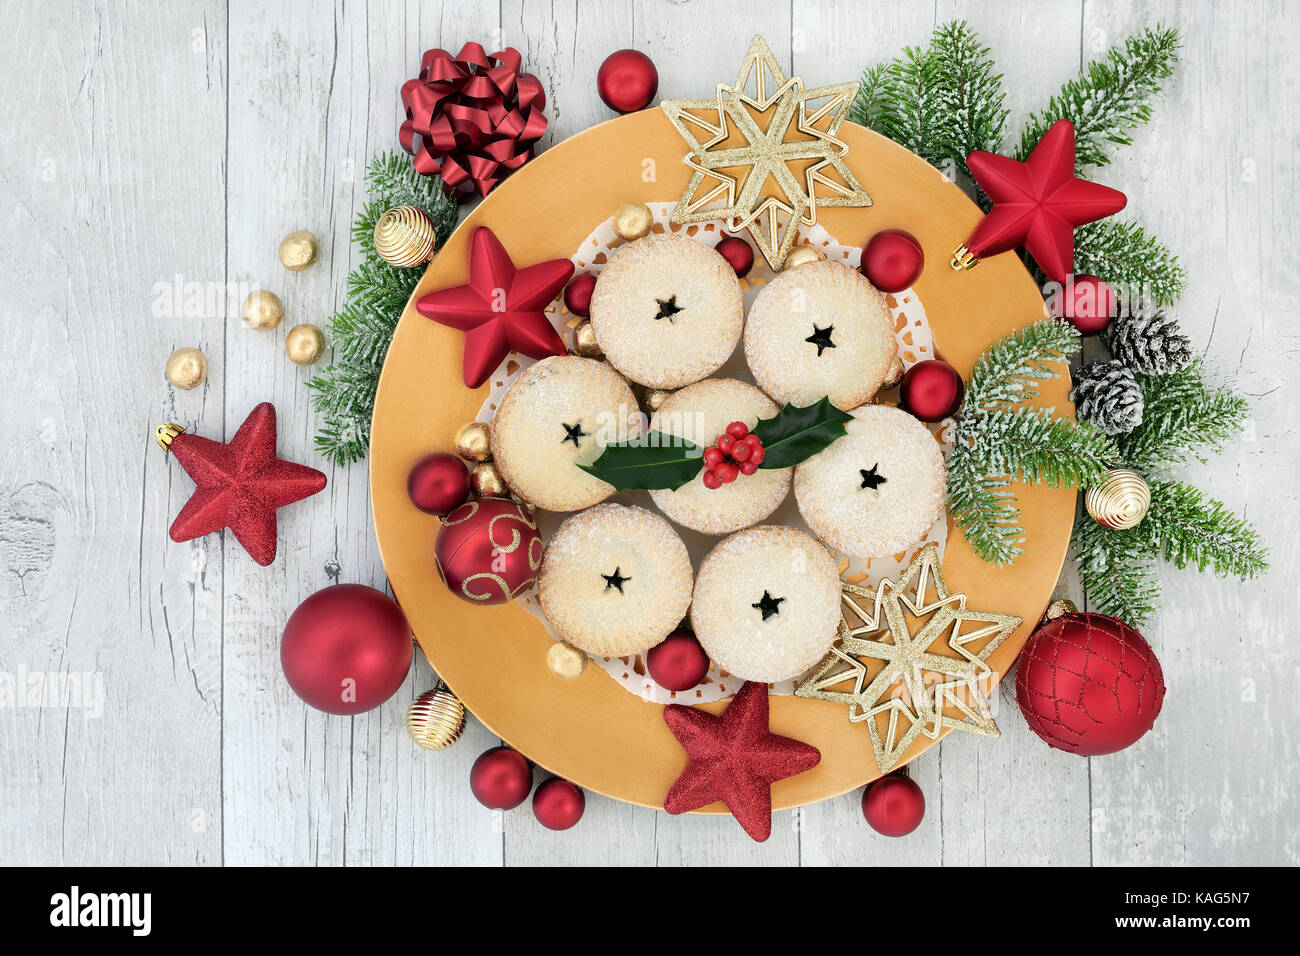 Homemade christmas mince pies on a gold plate with red and gold bauble decorations, holly, fir and foil wrapped - Stock Image